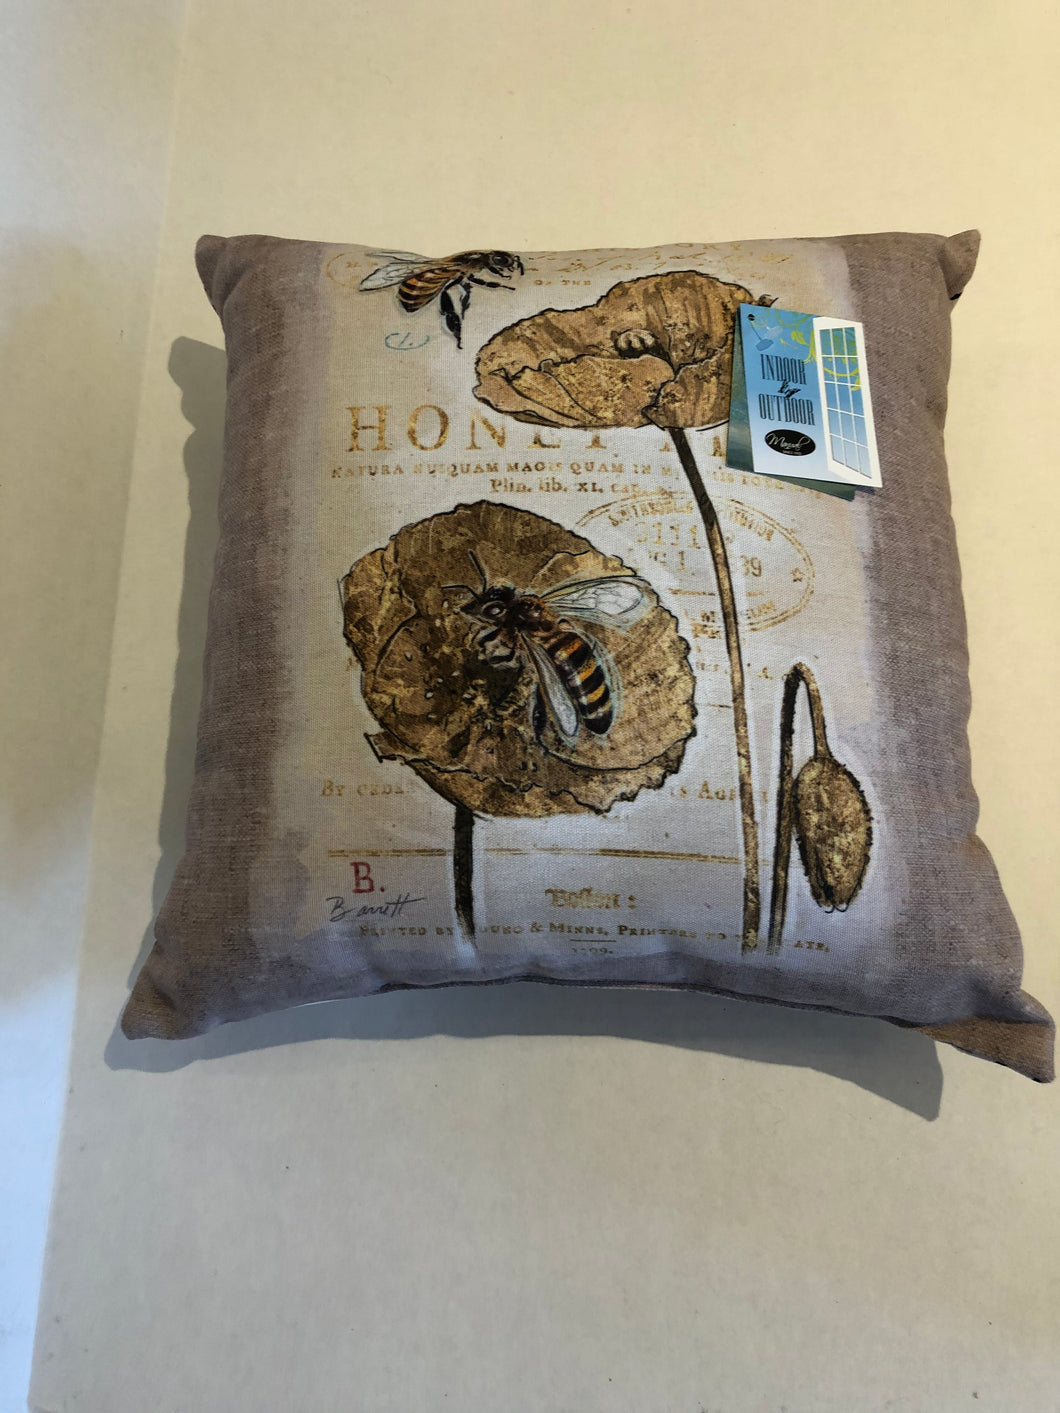 Manual Life Bee Hny Bee Pillow